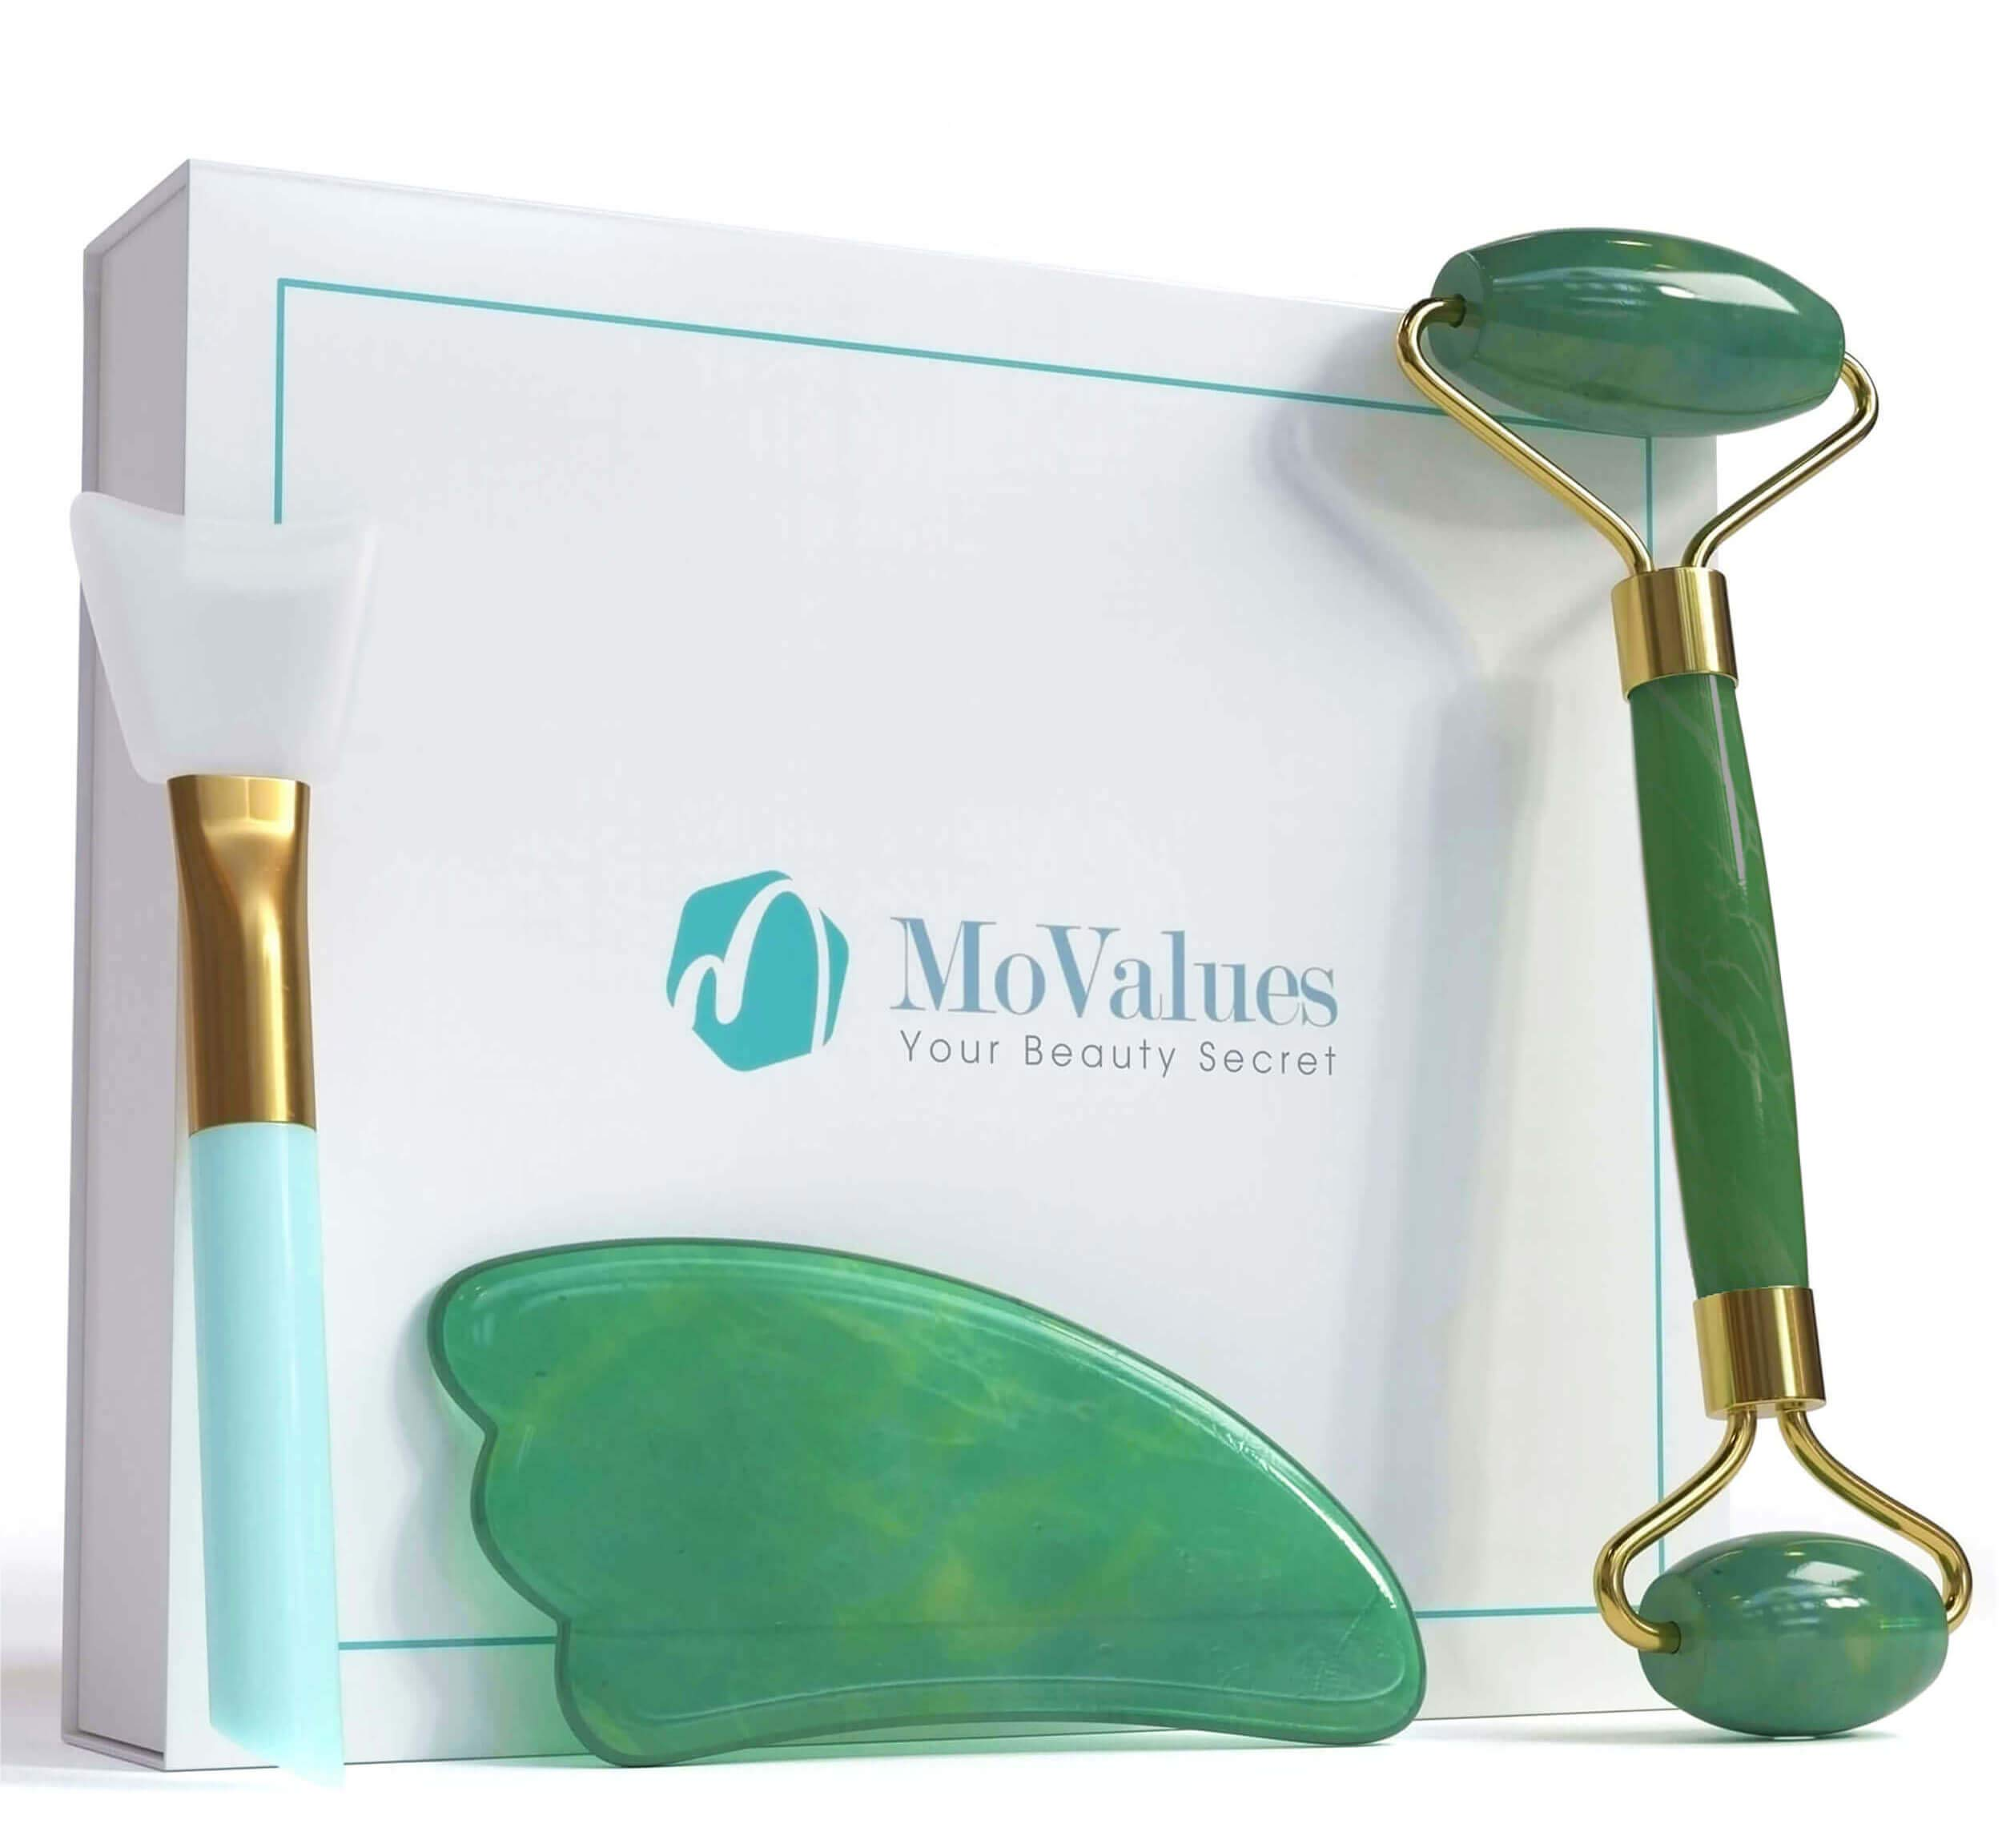 Authentic Jade Roller and Gua Sha Set - Jade Roller for Face - Face Roller, Real 100% Jade - Face Massager for Wrinkles, Anti Aging Facial Massager - Authentic, Natural, Durable, Noiseless by MoValues